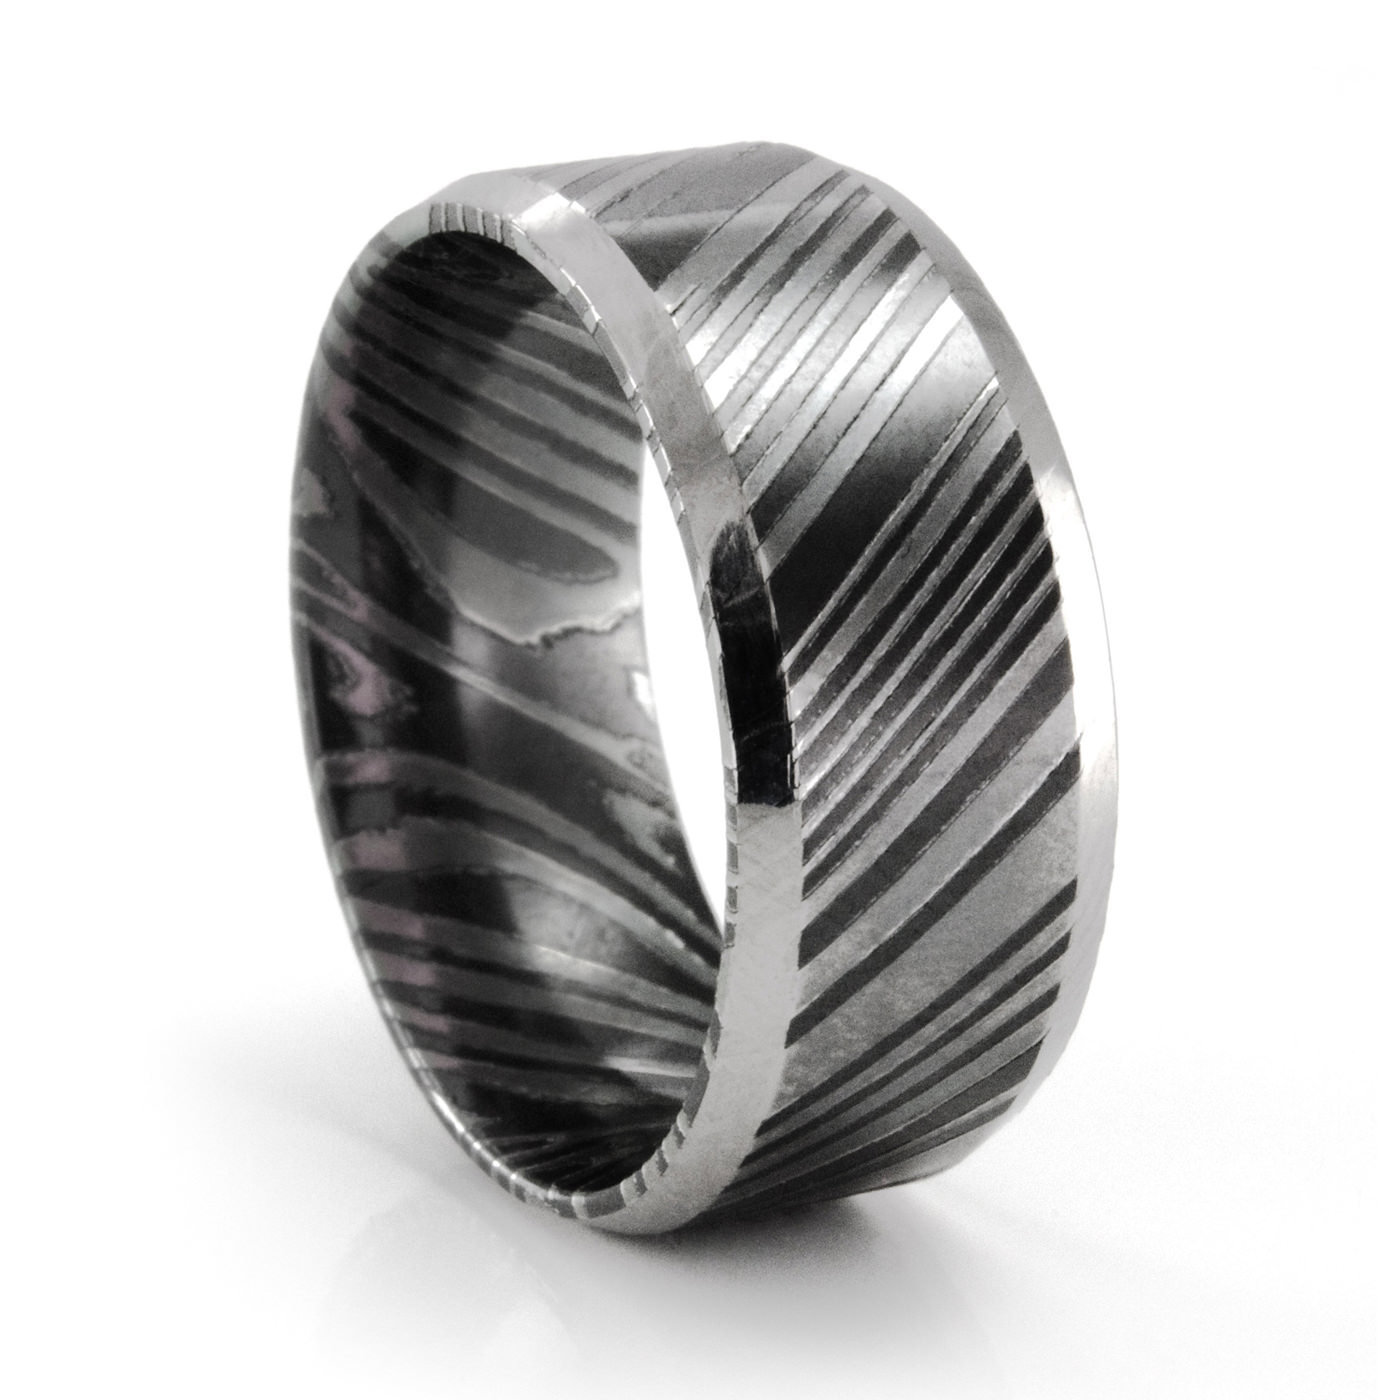 turkey hunting banded band product wedding category titanium feet page mens black ring bands source rings camo